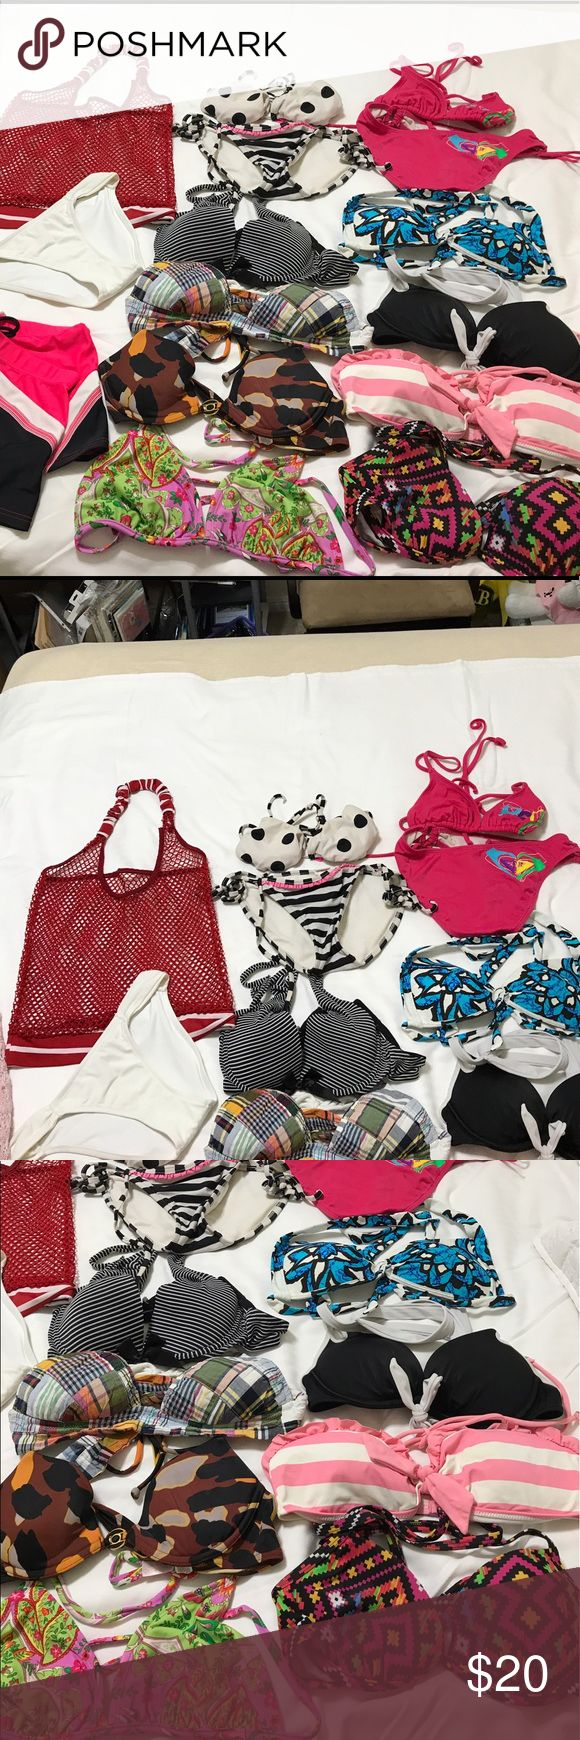 BUNDLE Victoria Secret & Other Bikini Top&Bottoms 8 Tops, 2 matching sets (Roxy in pink & white & black Xhiliration), 1 VS xs white bottom, 1 black/pink ZeroExposur skirt, 1 red halter top, 1 light pink cover up - 15 ITEMS TOTAL - tops are all XS/S size - all are halter top style (tie at the neck (white & pink stripes top can be worn as tube top, gilly chicks Small) -can add more info if needed 👍 PayPal is an option Victoria's Secret Swim Bikinis